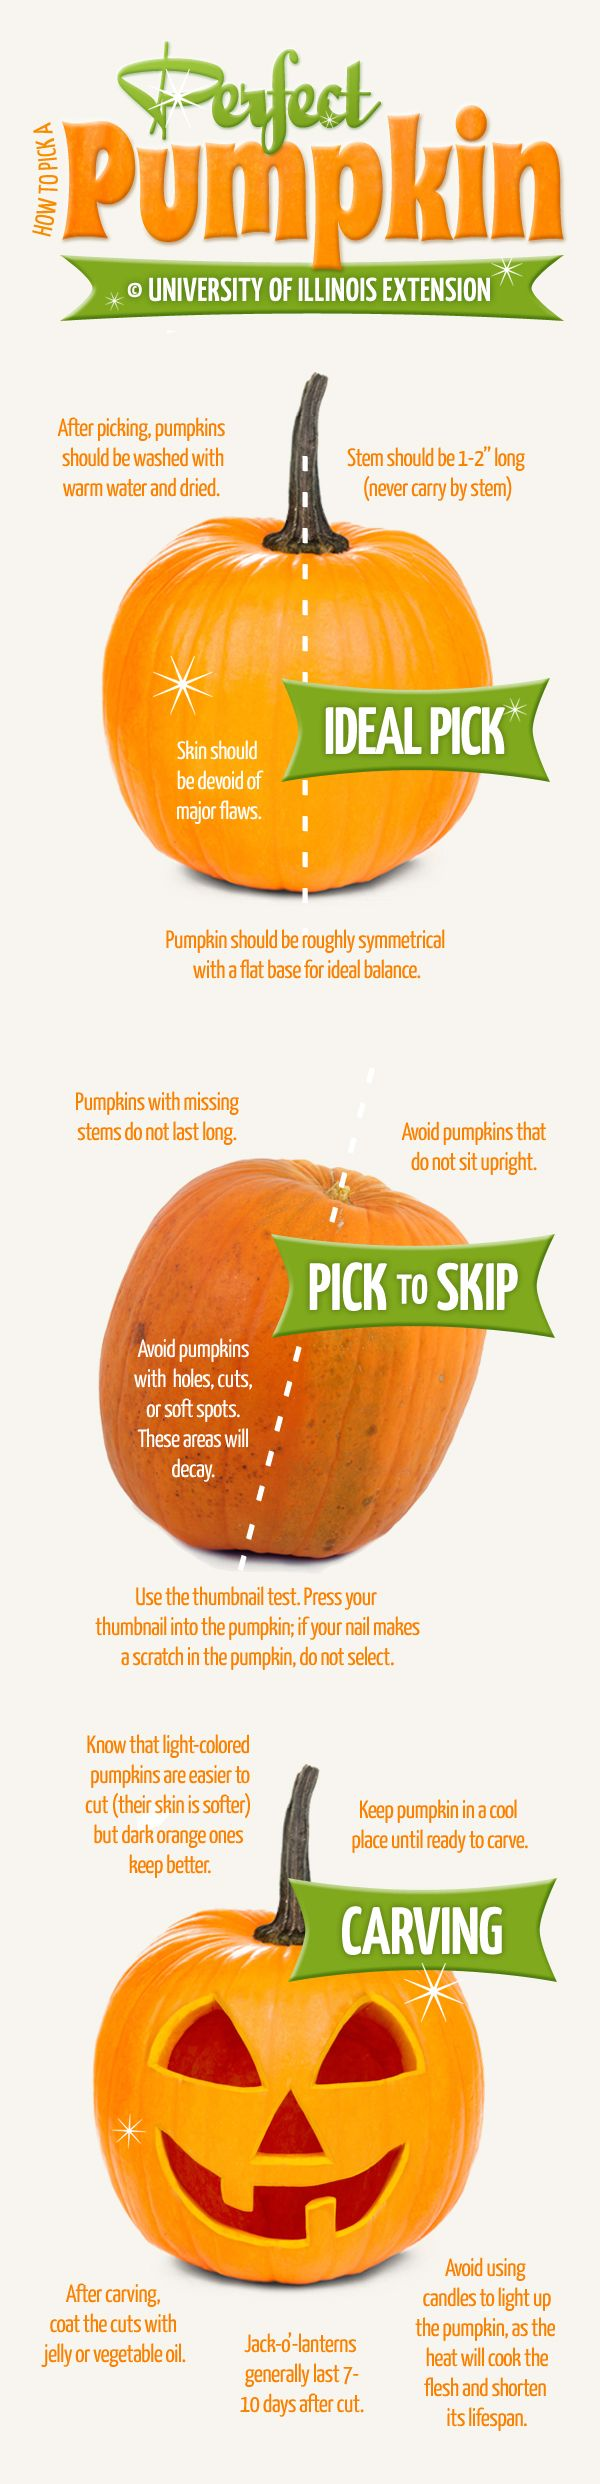 WE ♥ THIS!  ----------------------------- Original Pin Caption: How to Pick a Perfect Pumpkin (+ Carving Tips!)